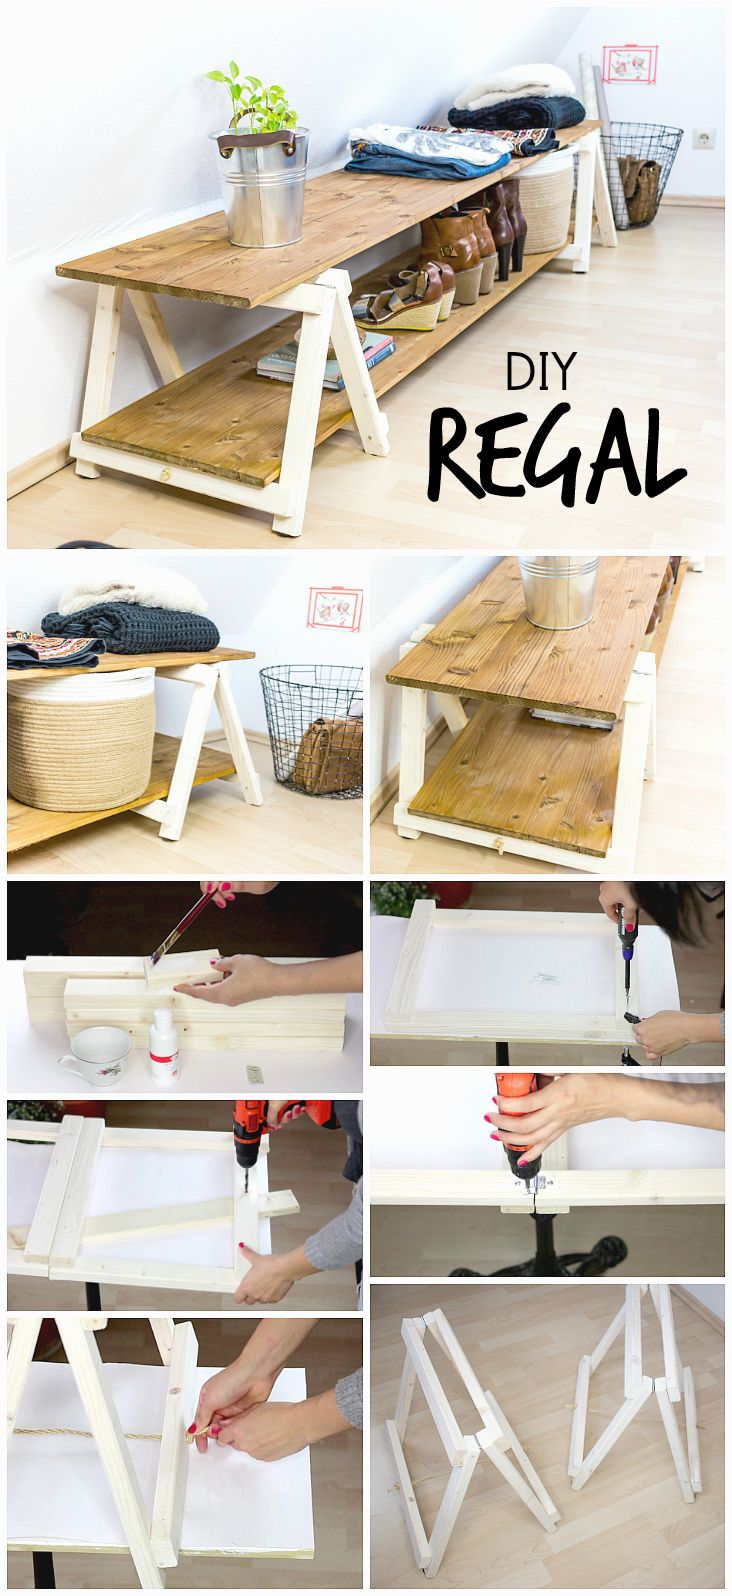 Regal Selber Machen Diy Regal Regal Bauen Mit Mini Klappböcken Projects I